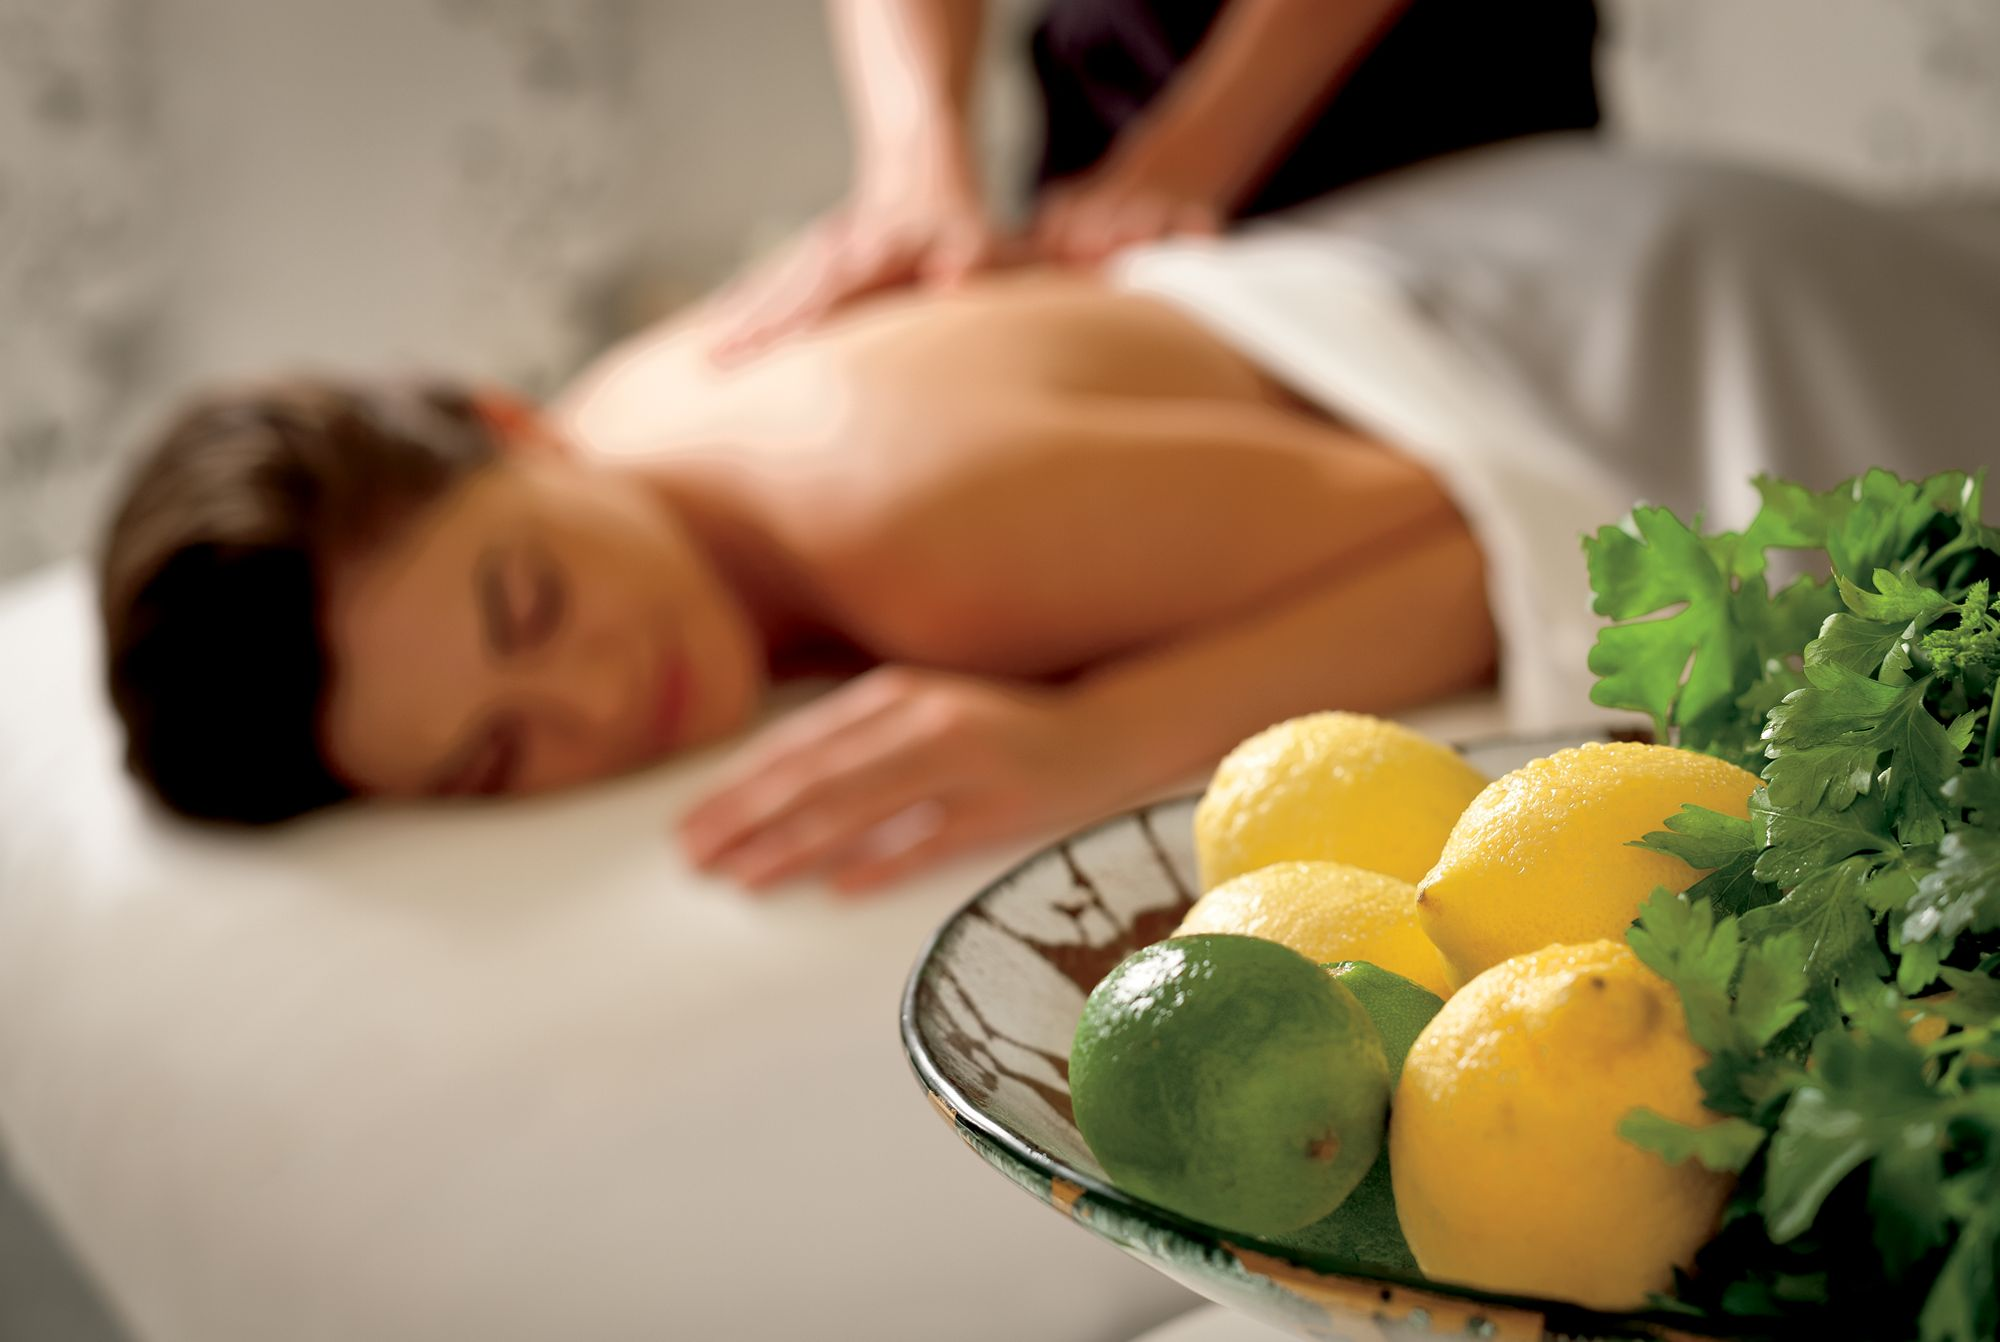 A woman lies on a massage table while a therapist works on her back with a bowl of lemons and limes in the foreground